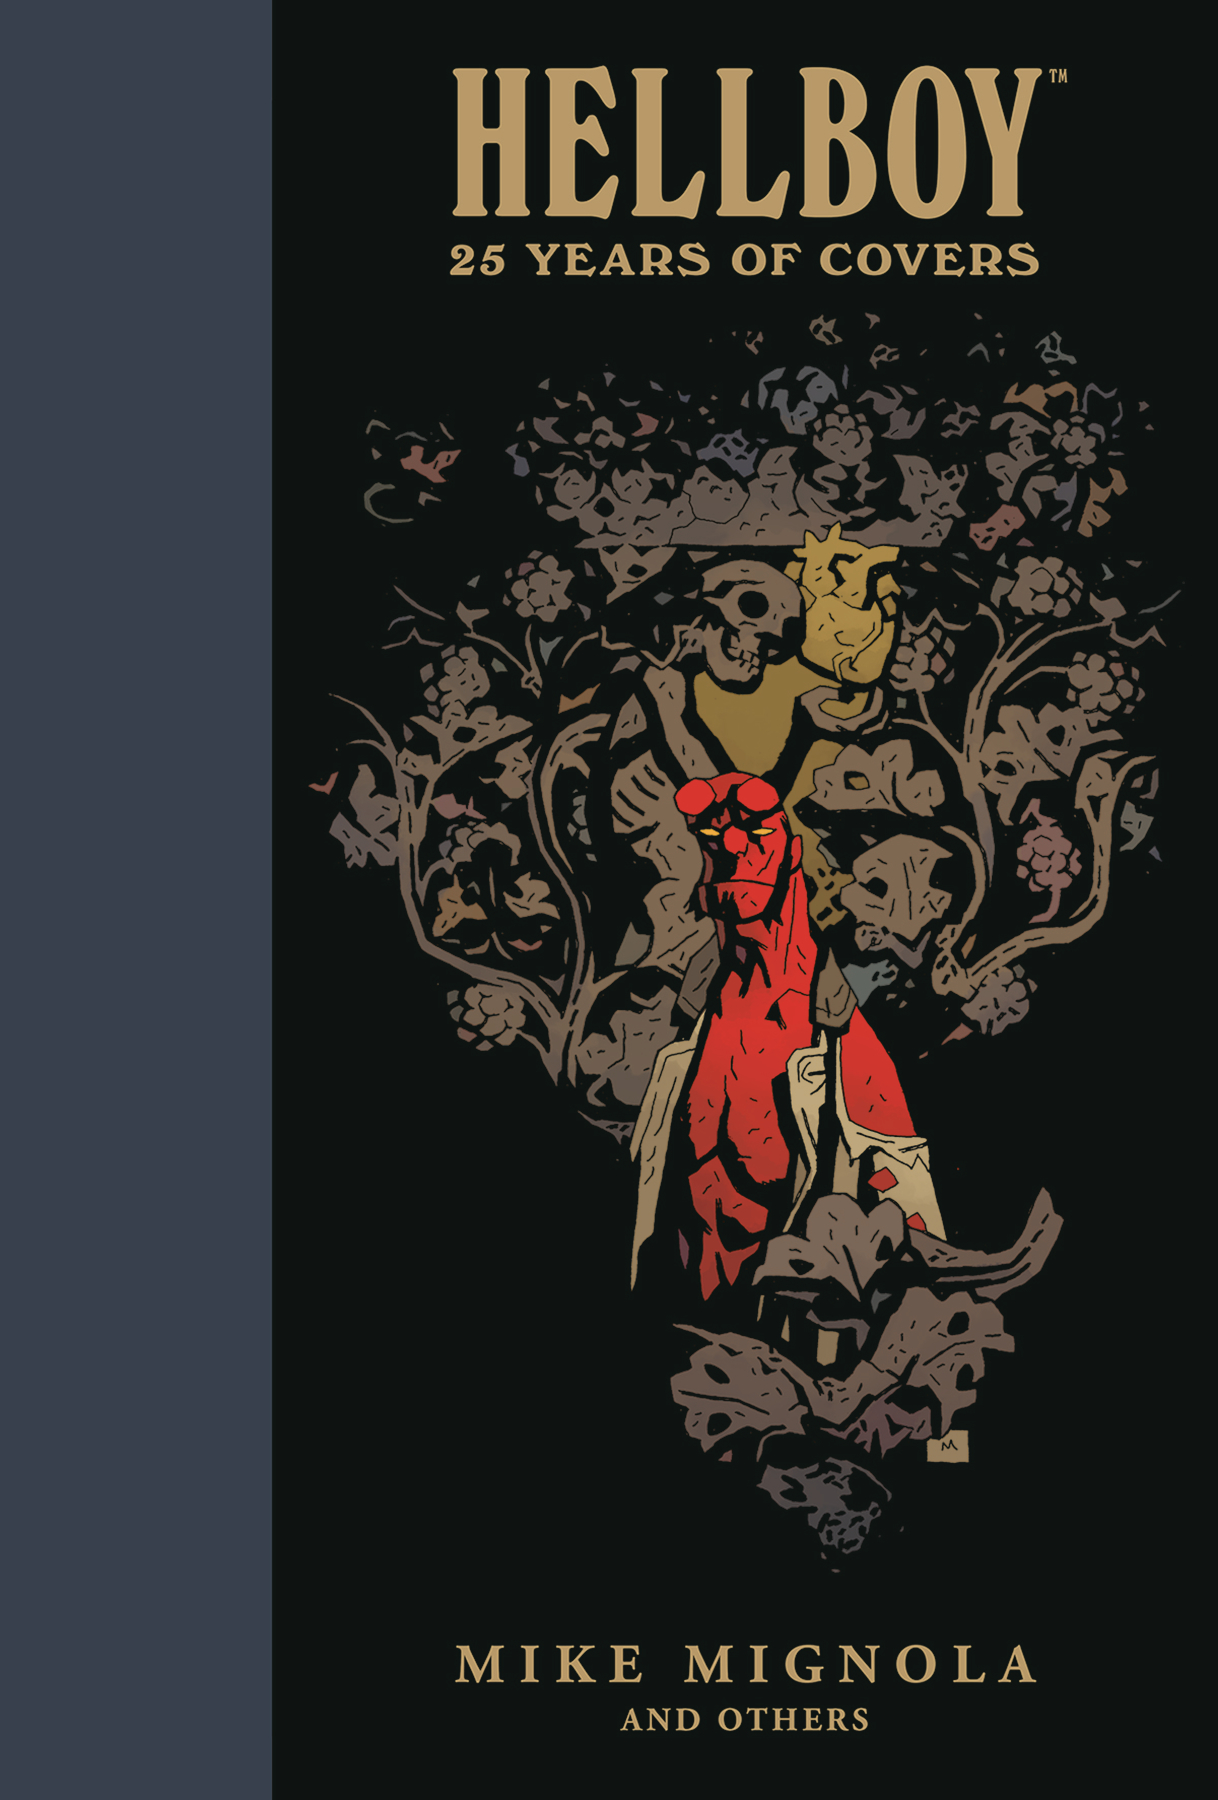 HELLBOY HC 25 YEARS OF COVERS (MAR190280)